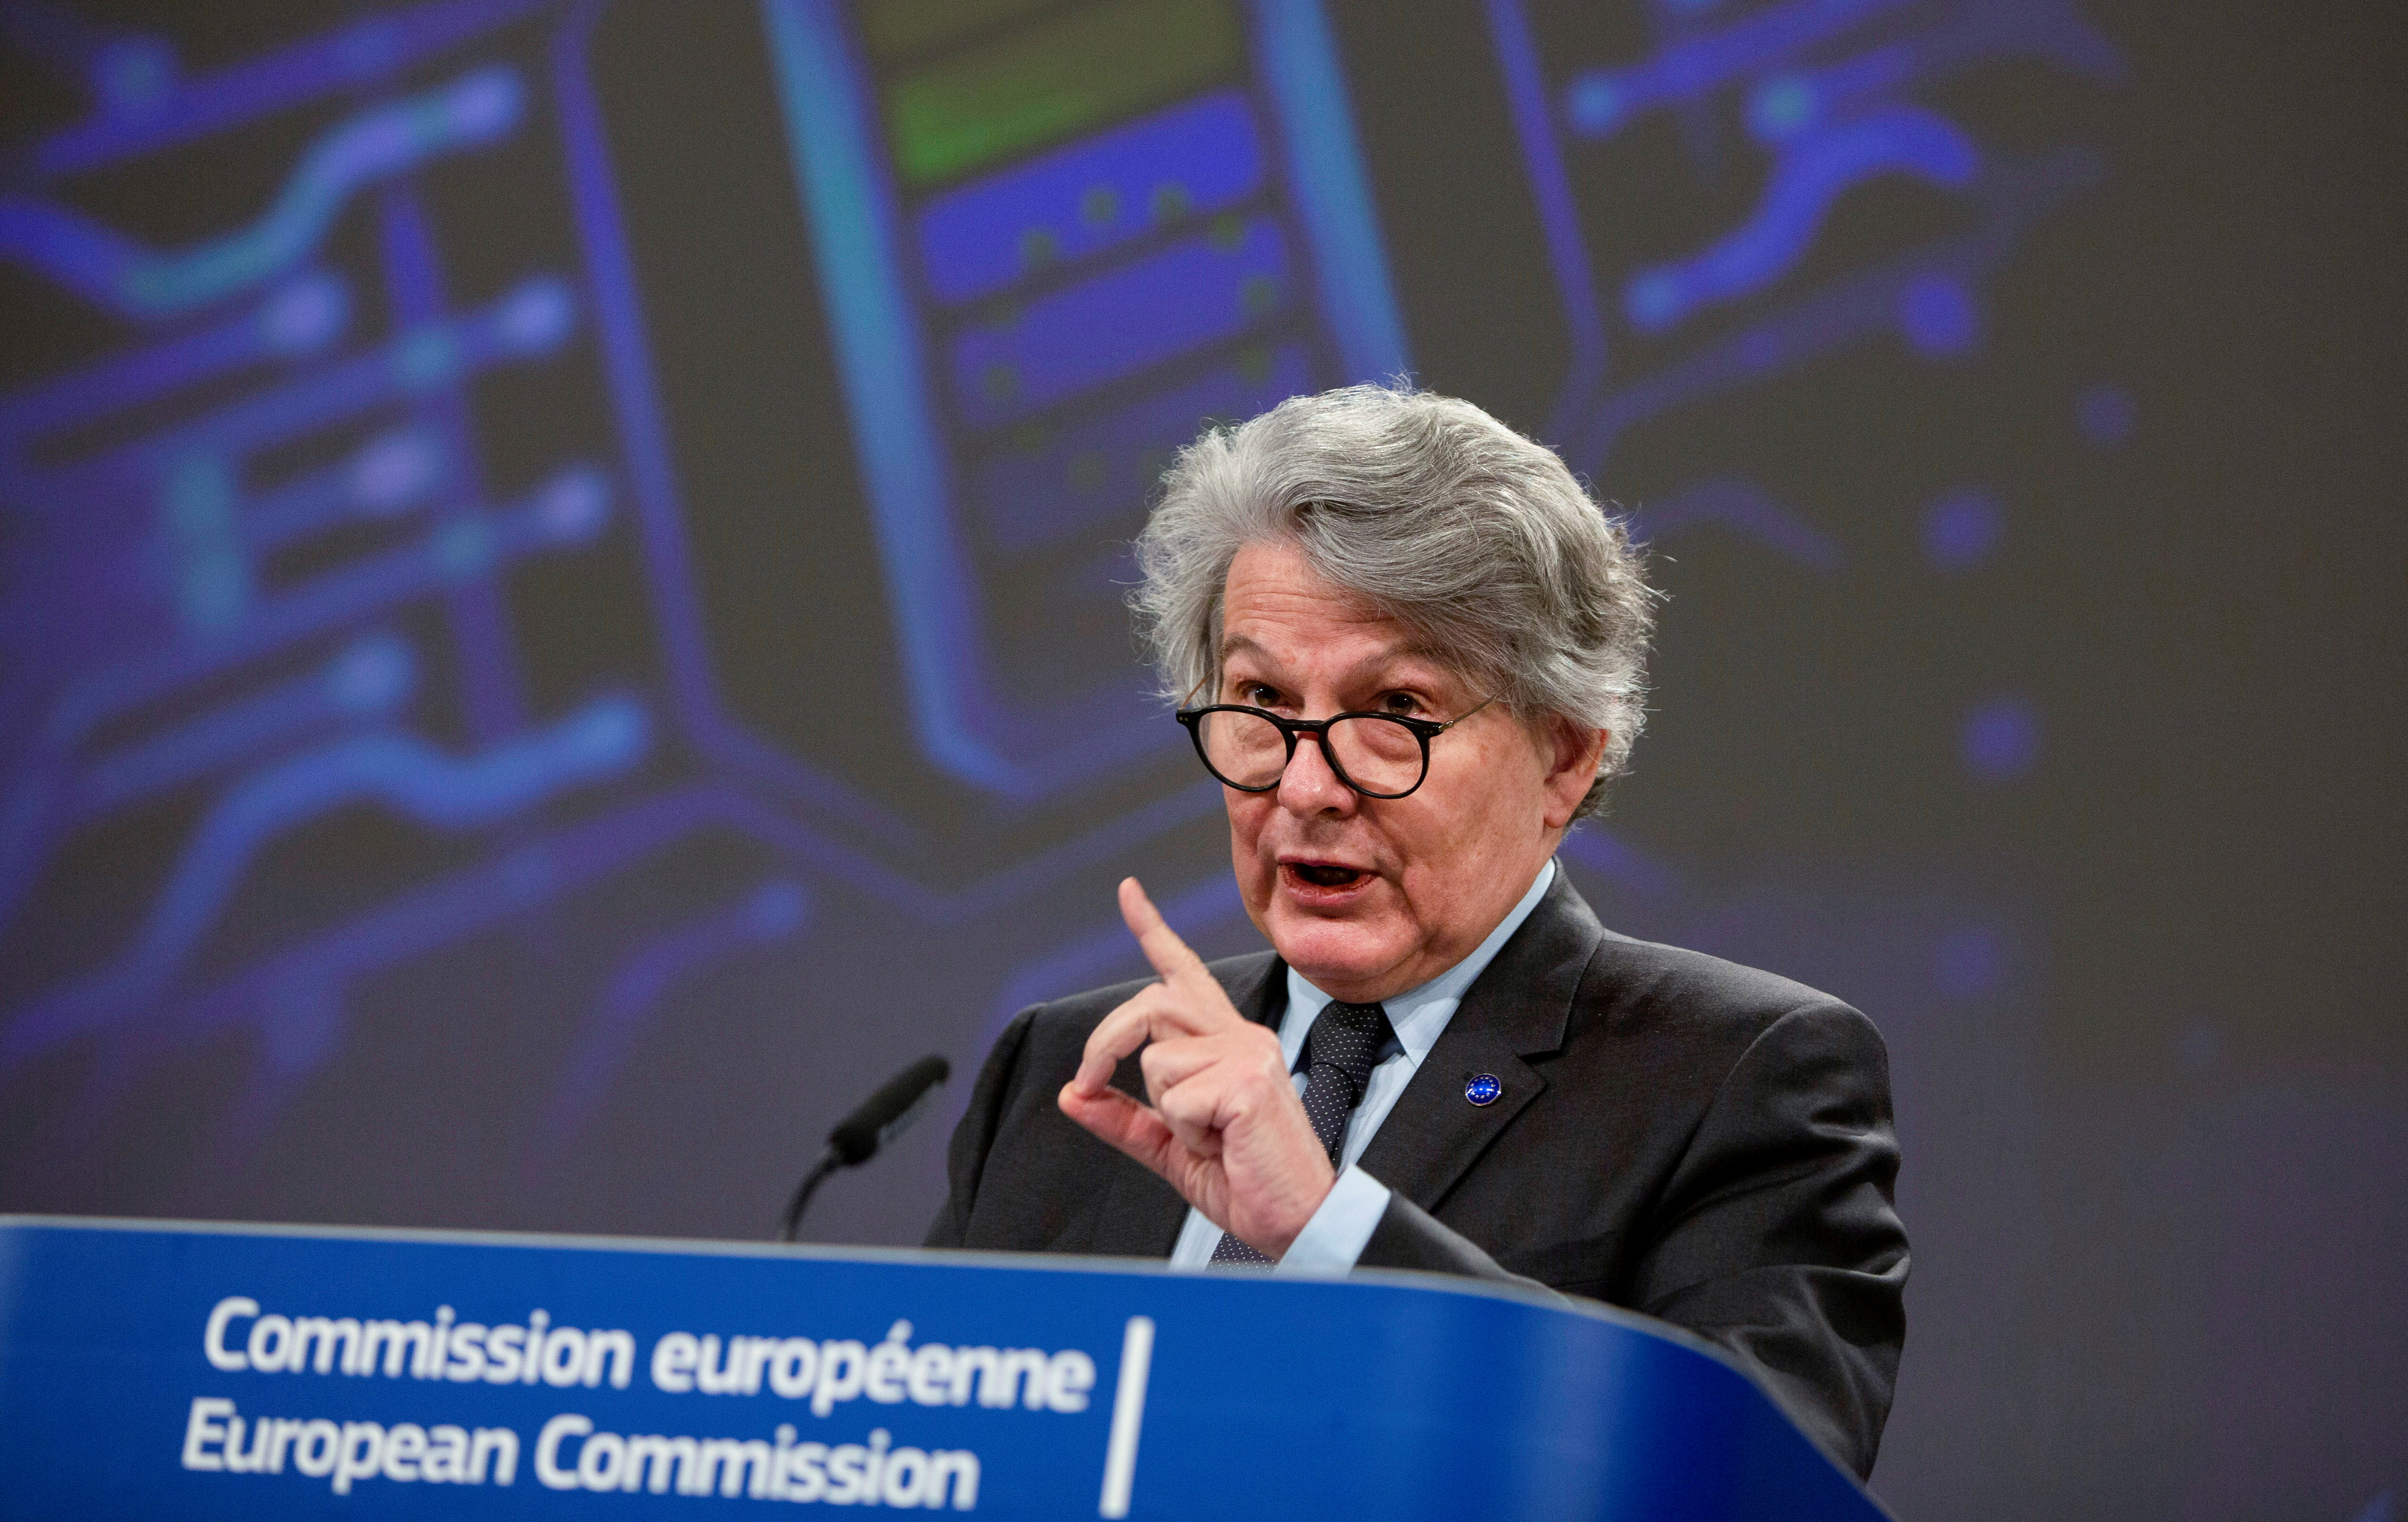 European Commissioner for Internal Market Thierry Breton speaks during a news conference regarding the European Battery Alliance at EU headquarters in Brussels, Belgium March 12, 2021. Virginia Mayo/Pool via REUTERS